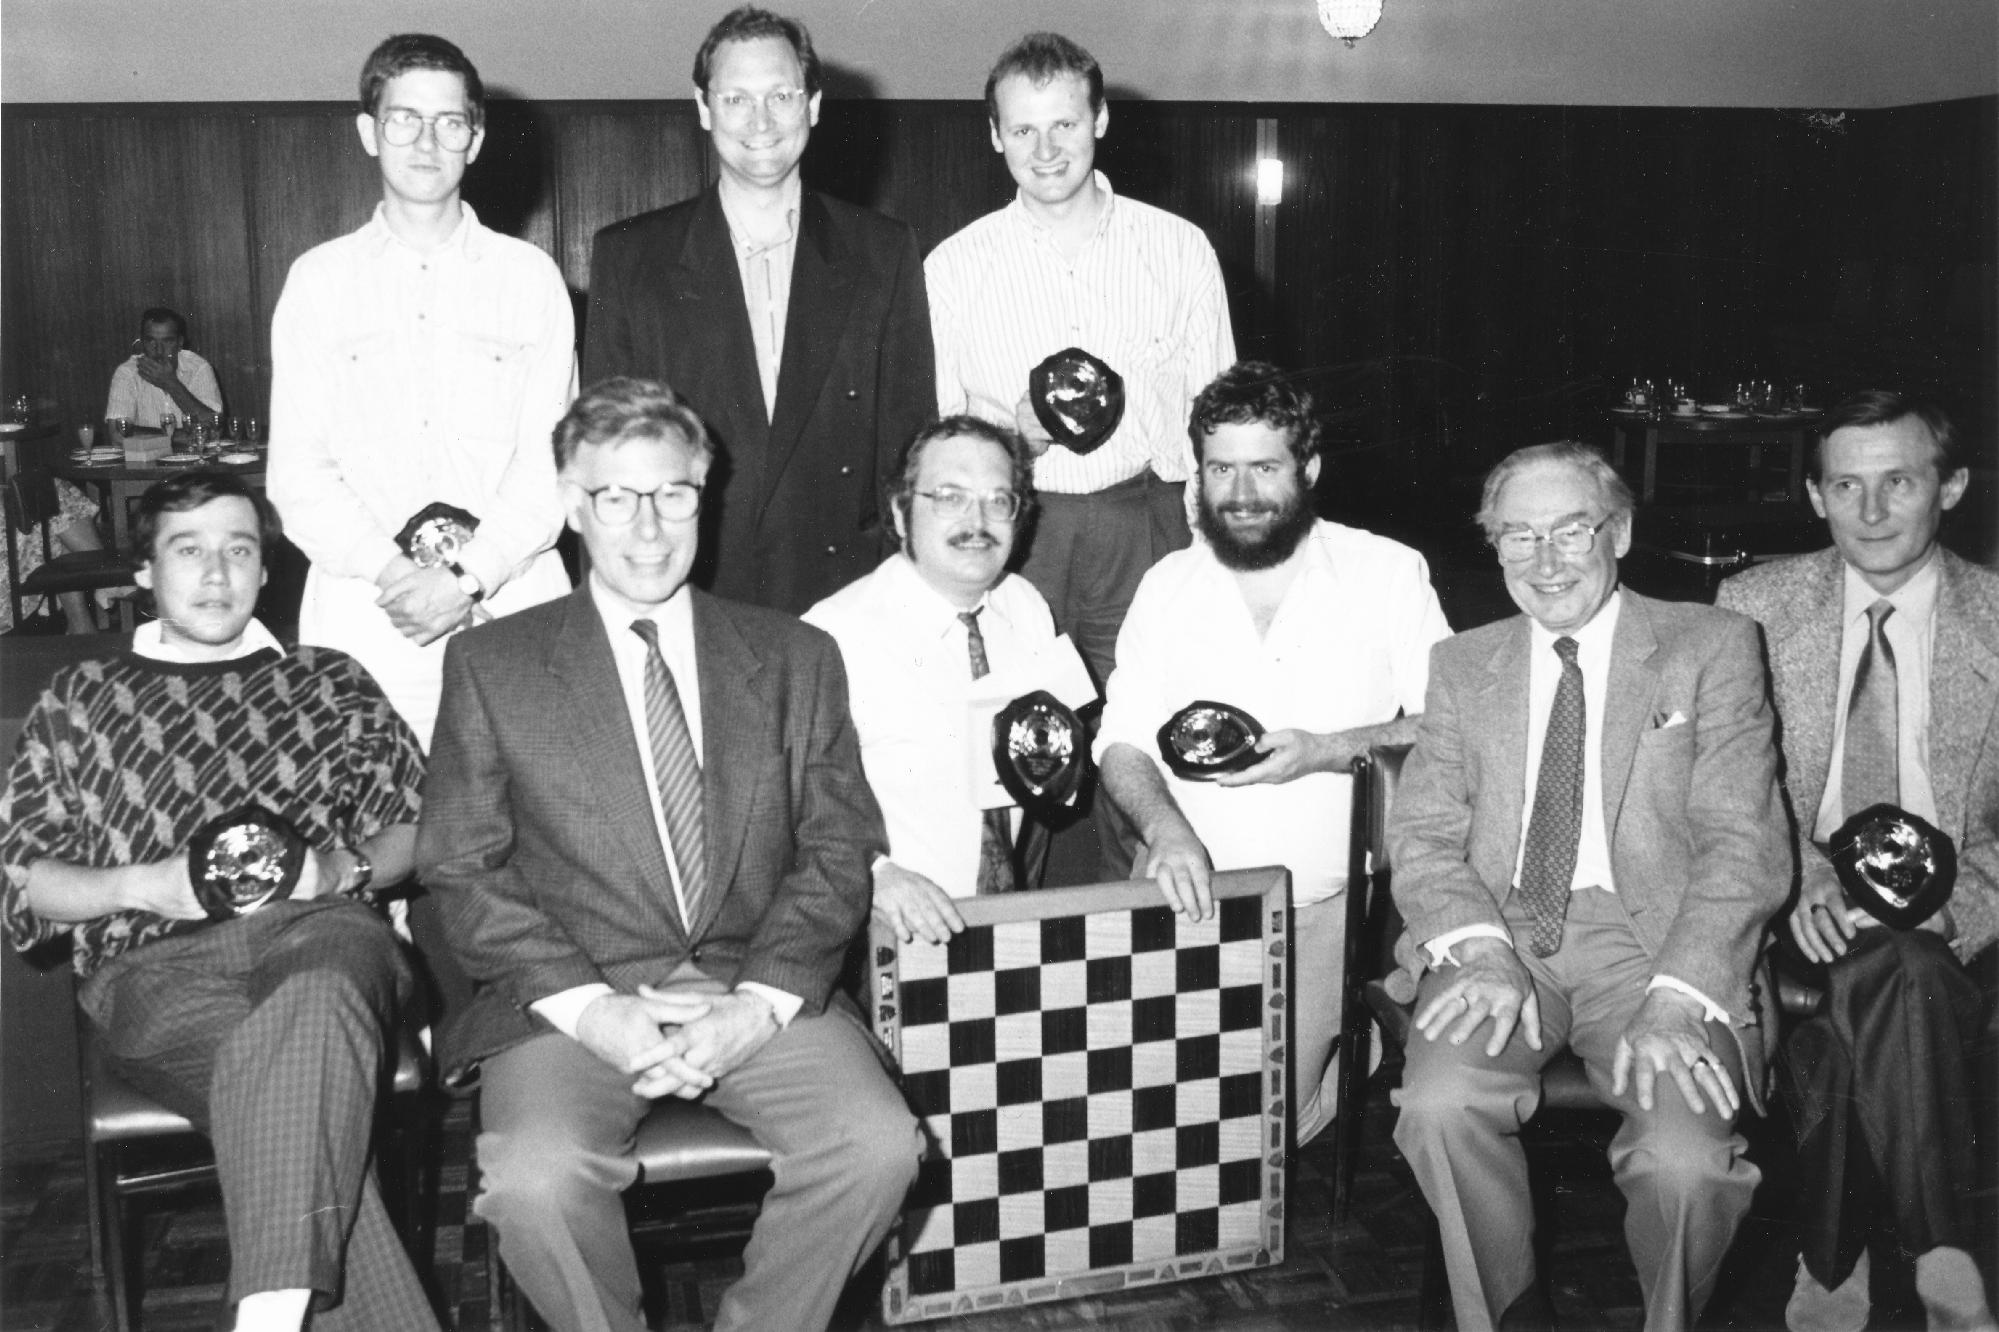 William Watson at a BCF National Club Final (top left)